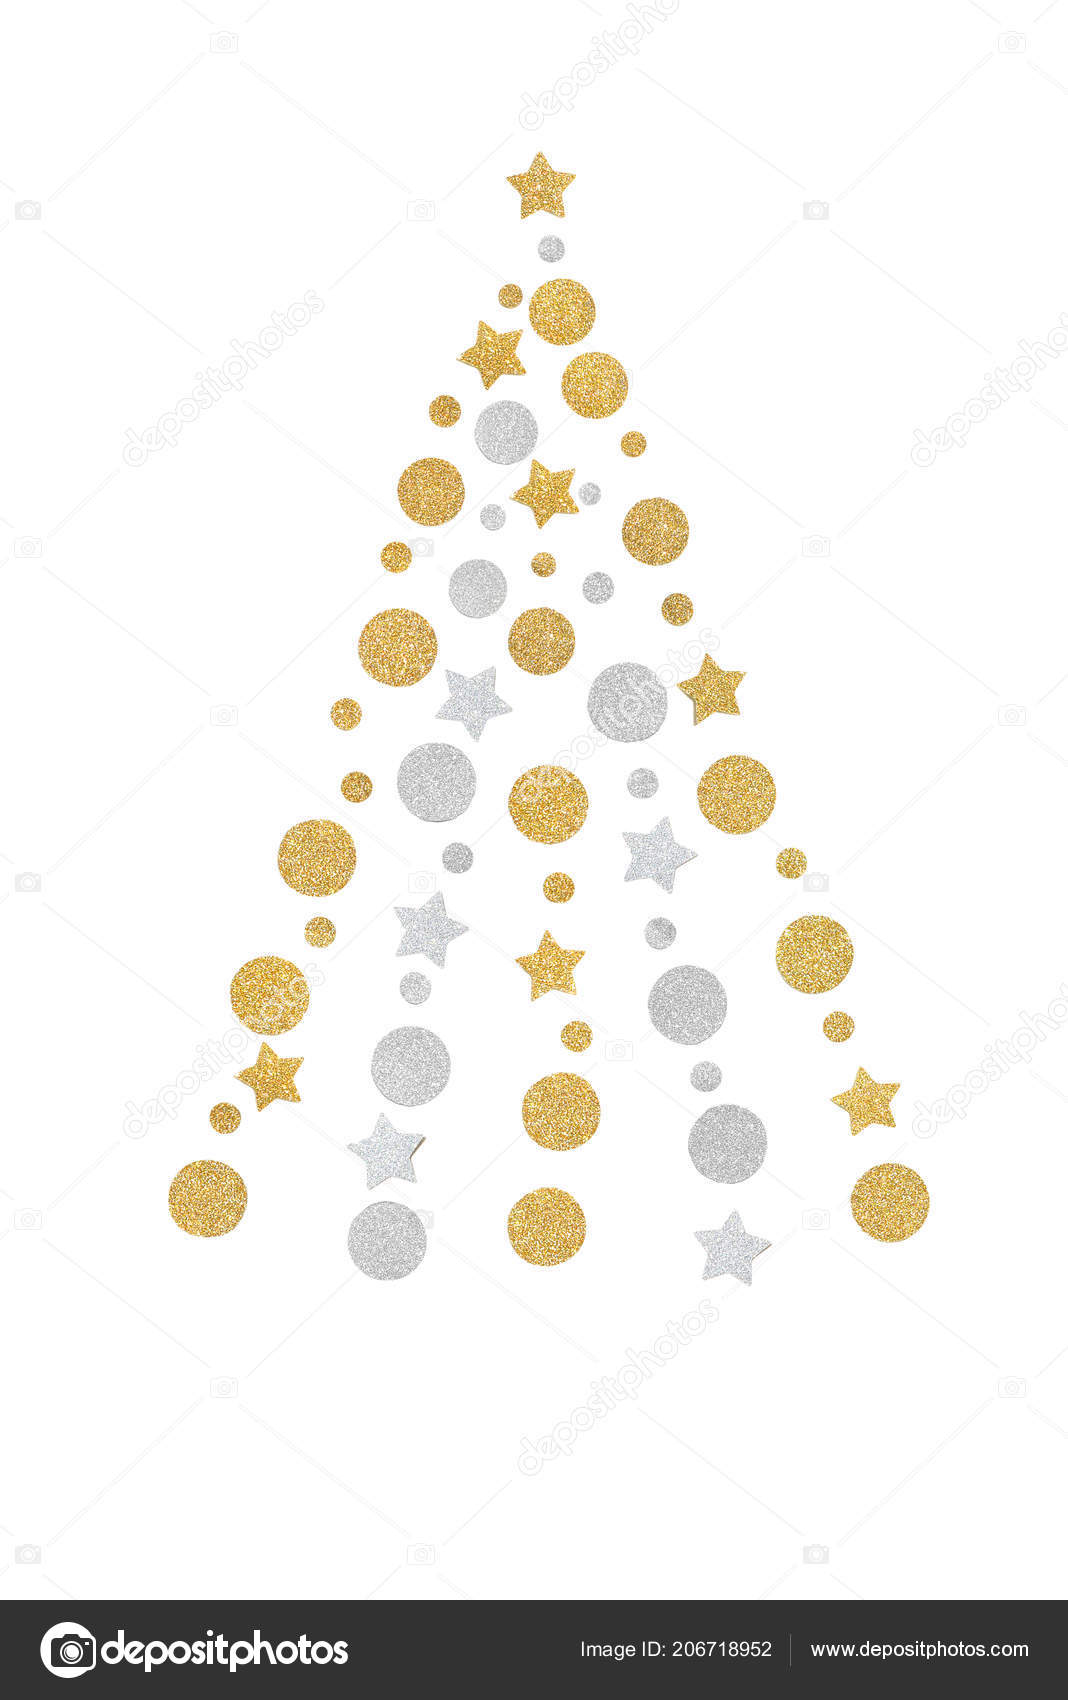 Gold silver glitter christmas tree paper cut white background isolated stock photo